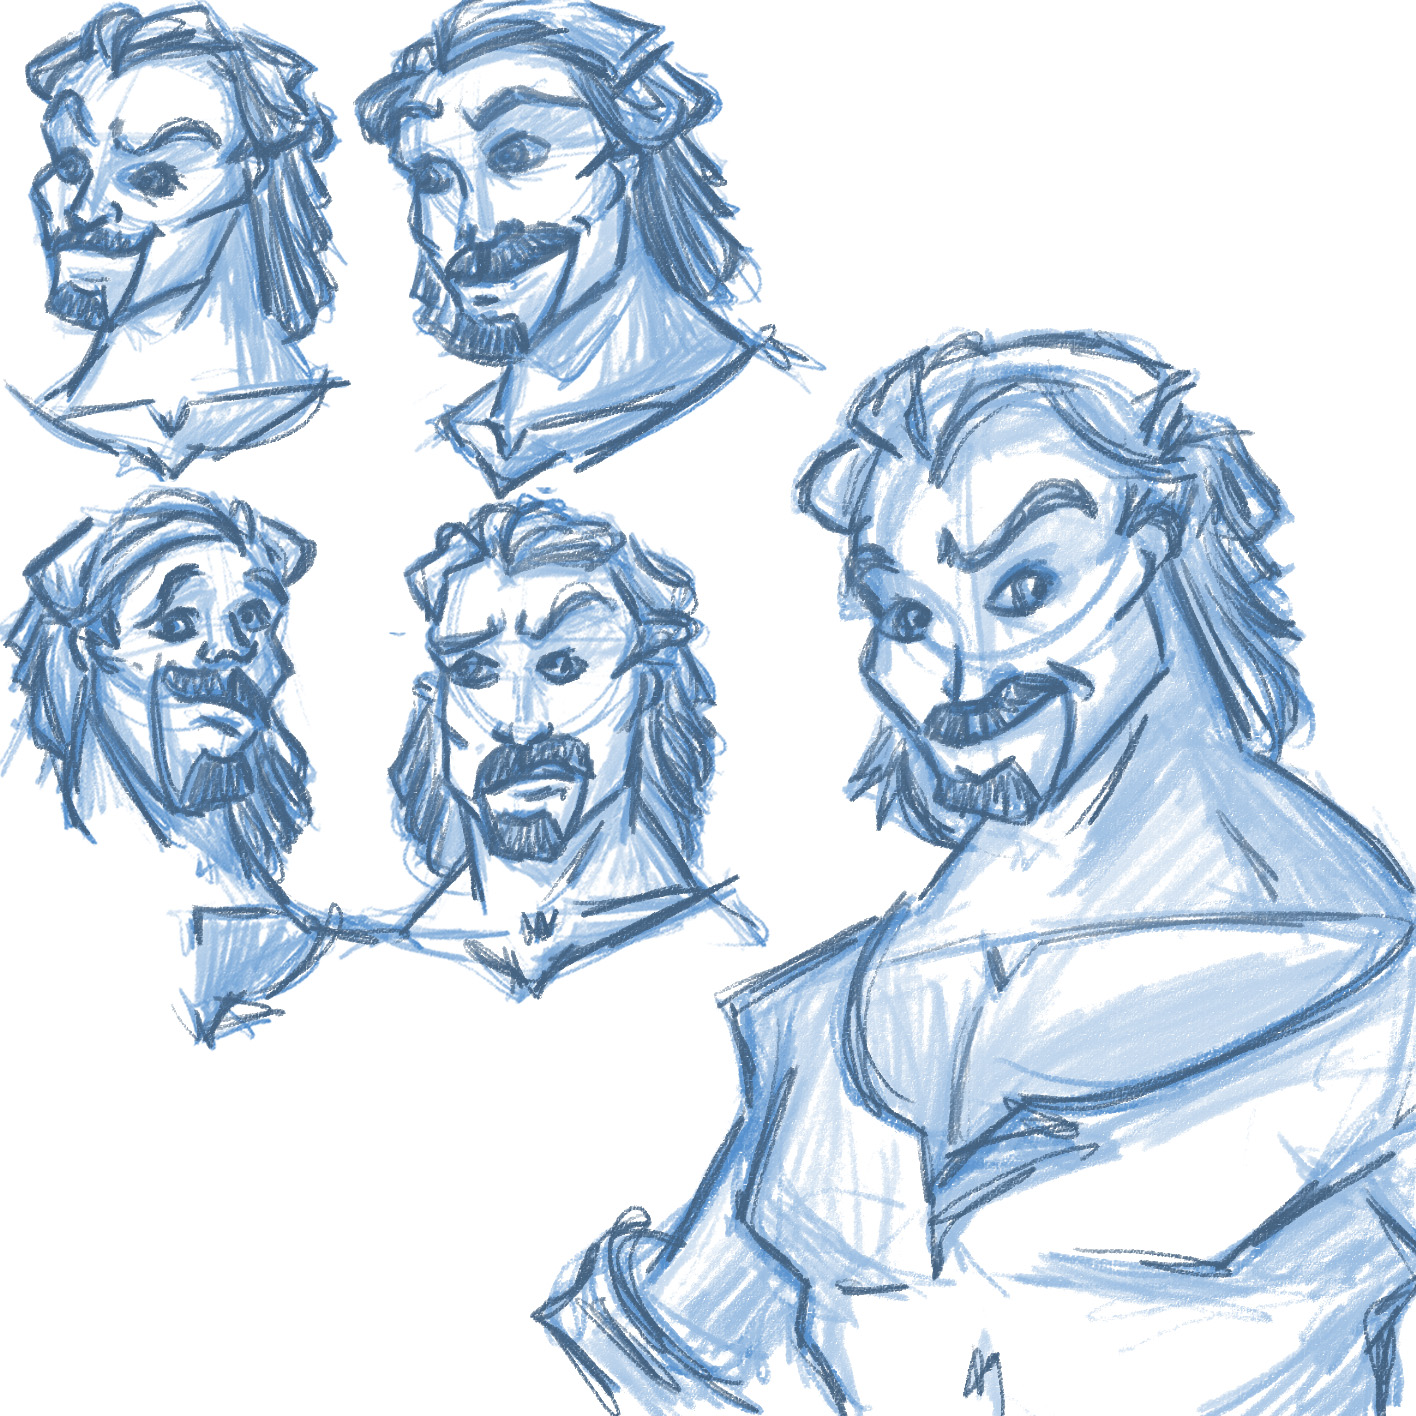 Male protagonist character concept